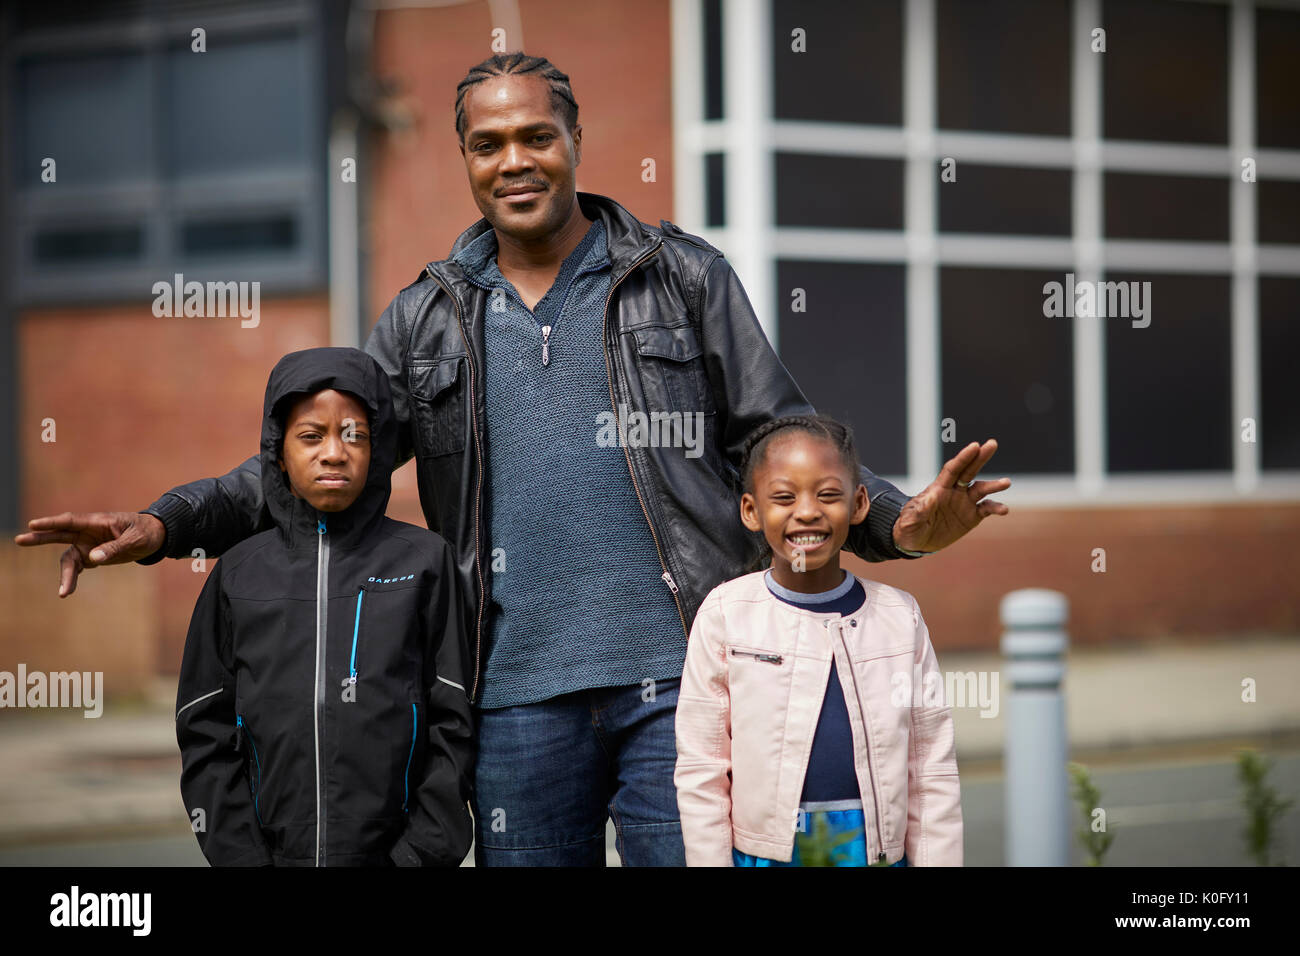 Local black man possesses with his children in Moss Side South Manchester suburb - Stock Image